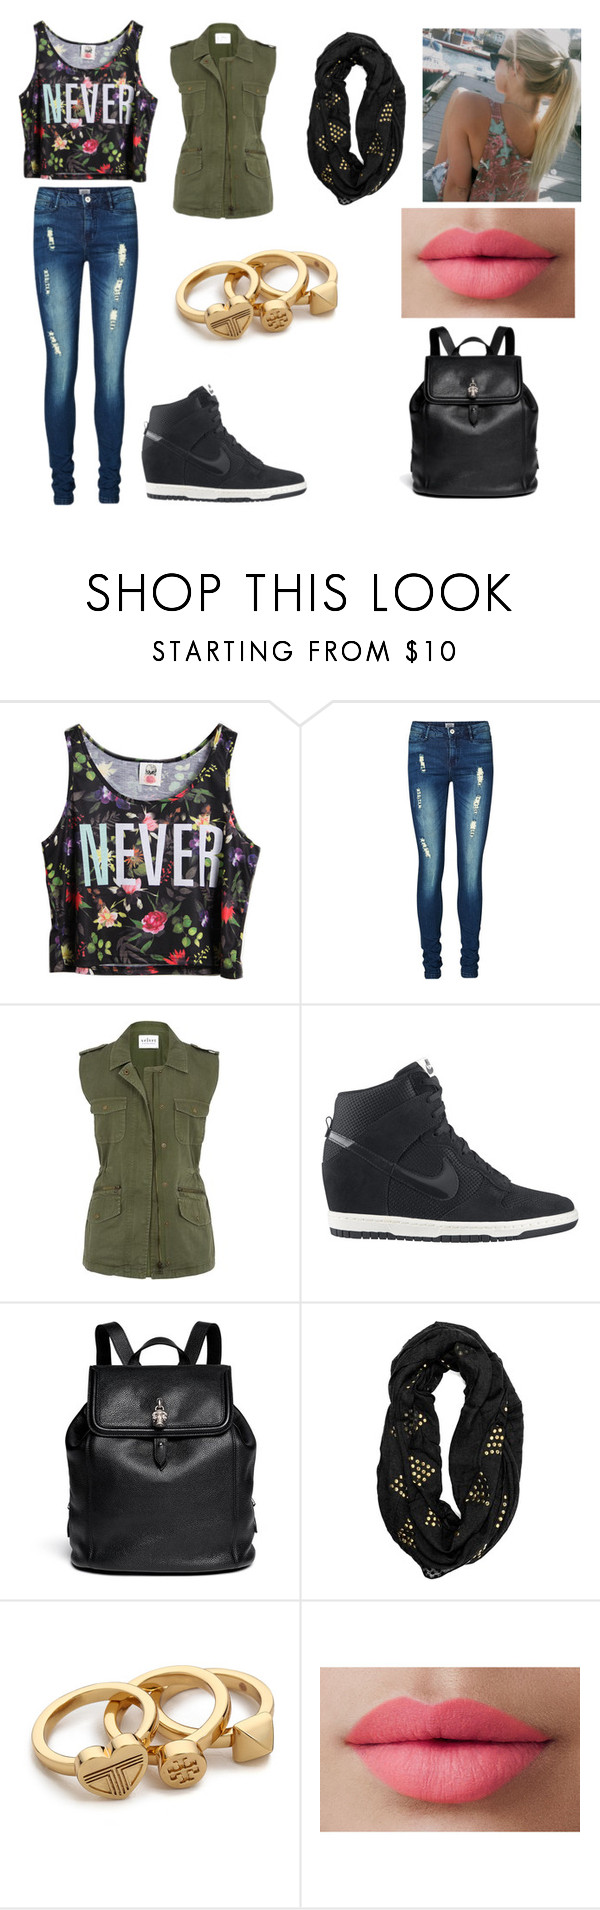 """""""cool"""" by samihadluv ❤ liked on Polyvore featuring Chicnova Fashion, Vero Moda, NIKE, Alexander McQueen, Tory Burch and LORAC"""